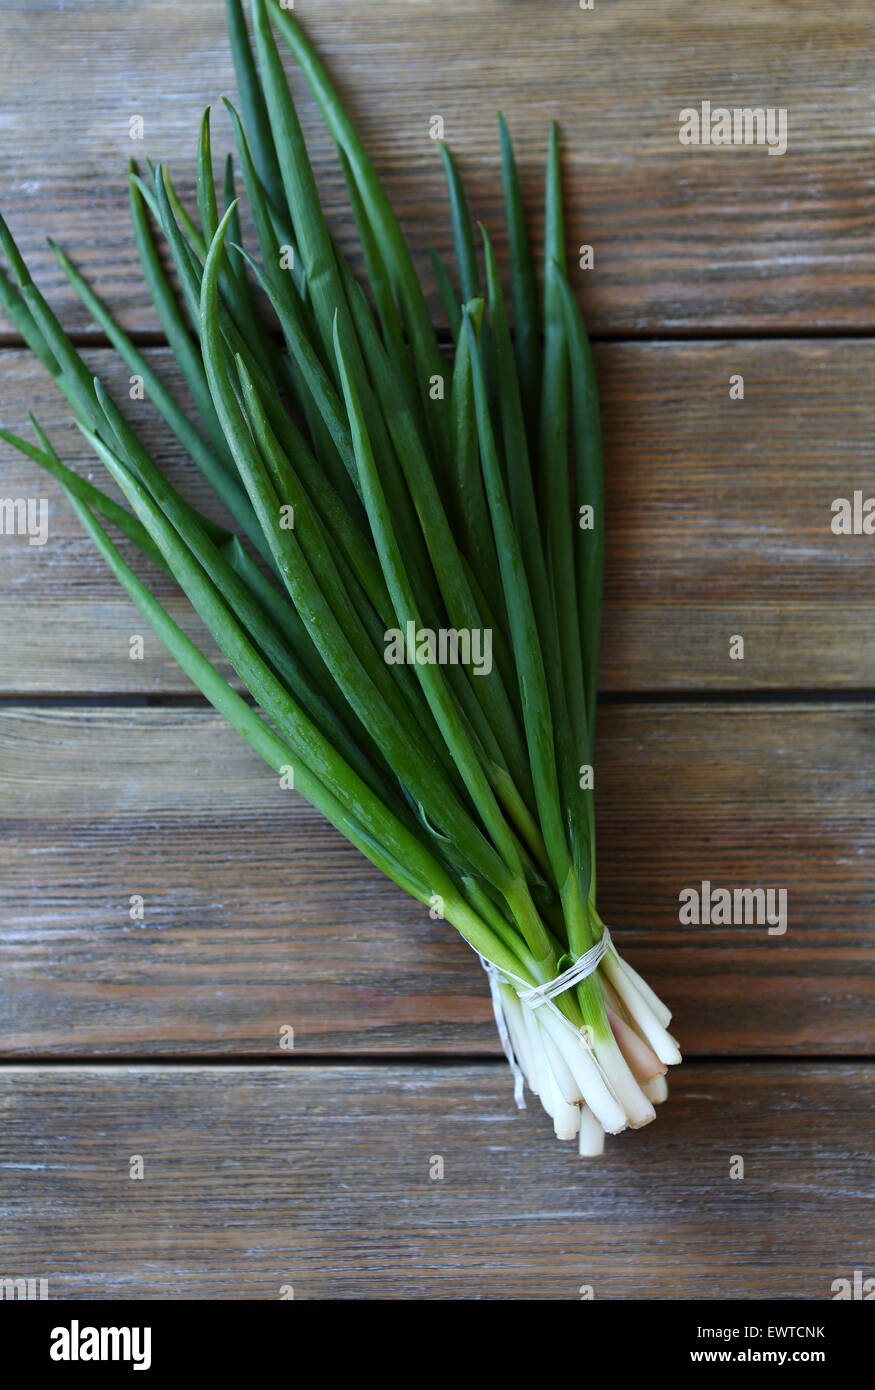 bundle of spring onions, fresh food - Stock Image